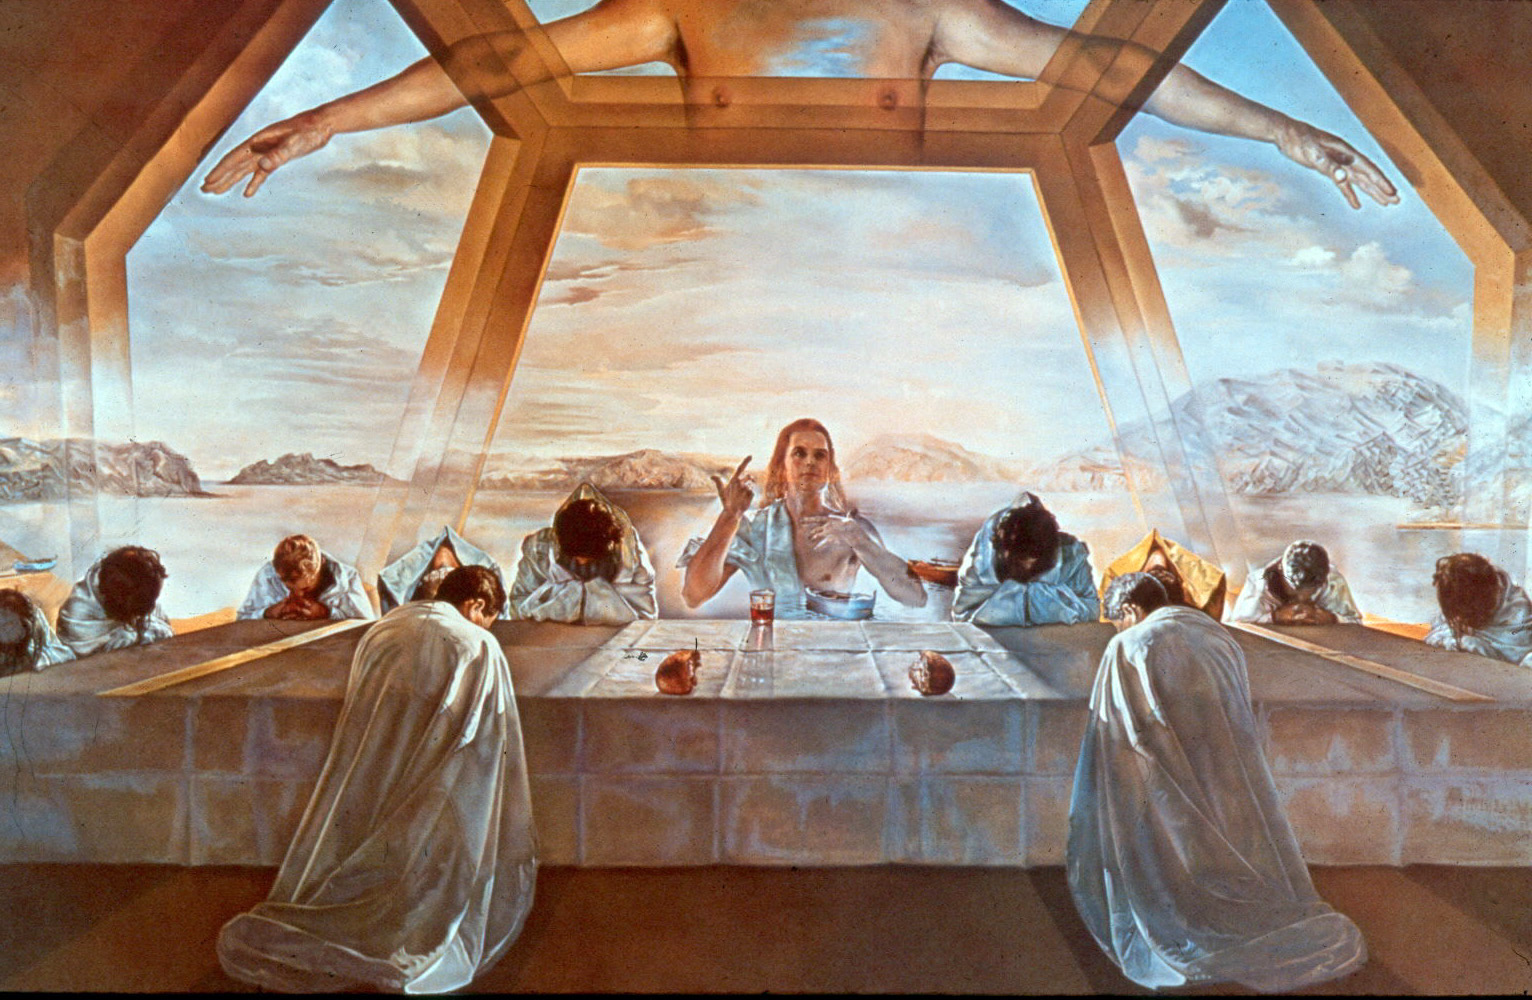 salvador dali last supper Salvador dali art for sale at doubletake gallery (limited editions) along with salvador dali art, you'll find hundreds of other fine art pieces for sale at doubletake gallery.